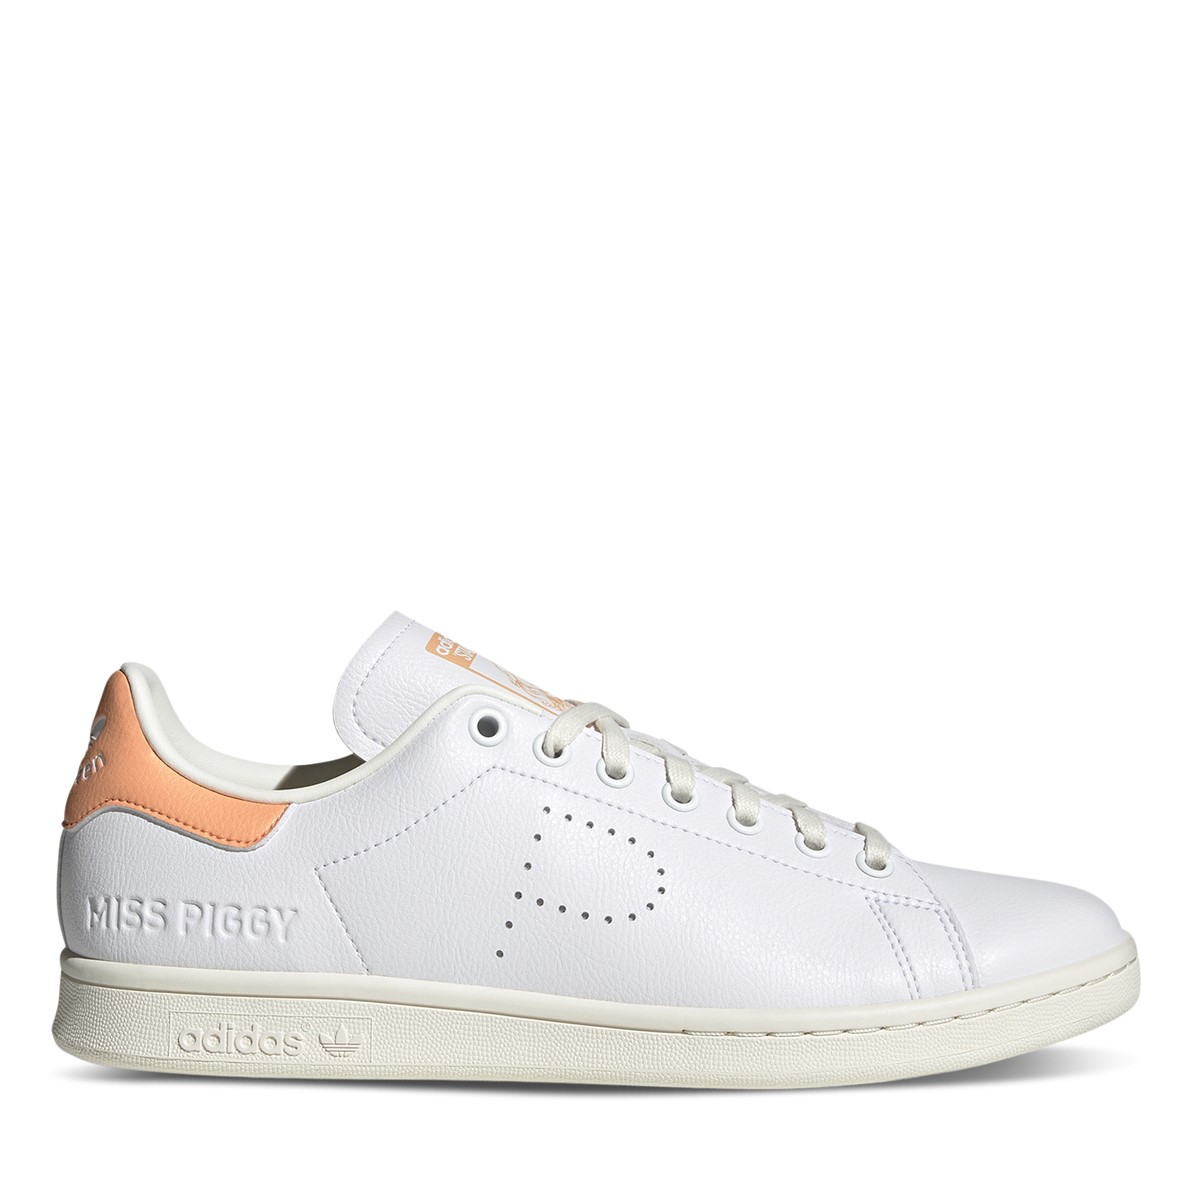 Kermit the Frog and Miss Piggy Stan Smith Sneakers in White/Green